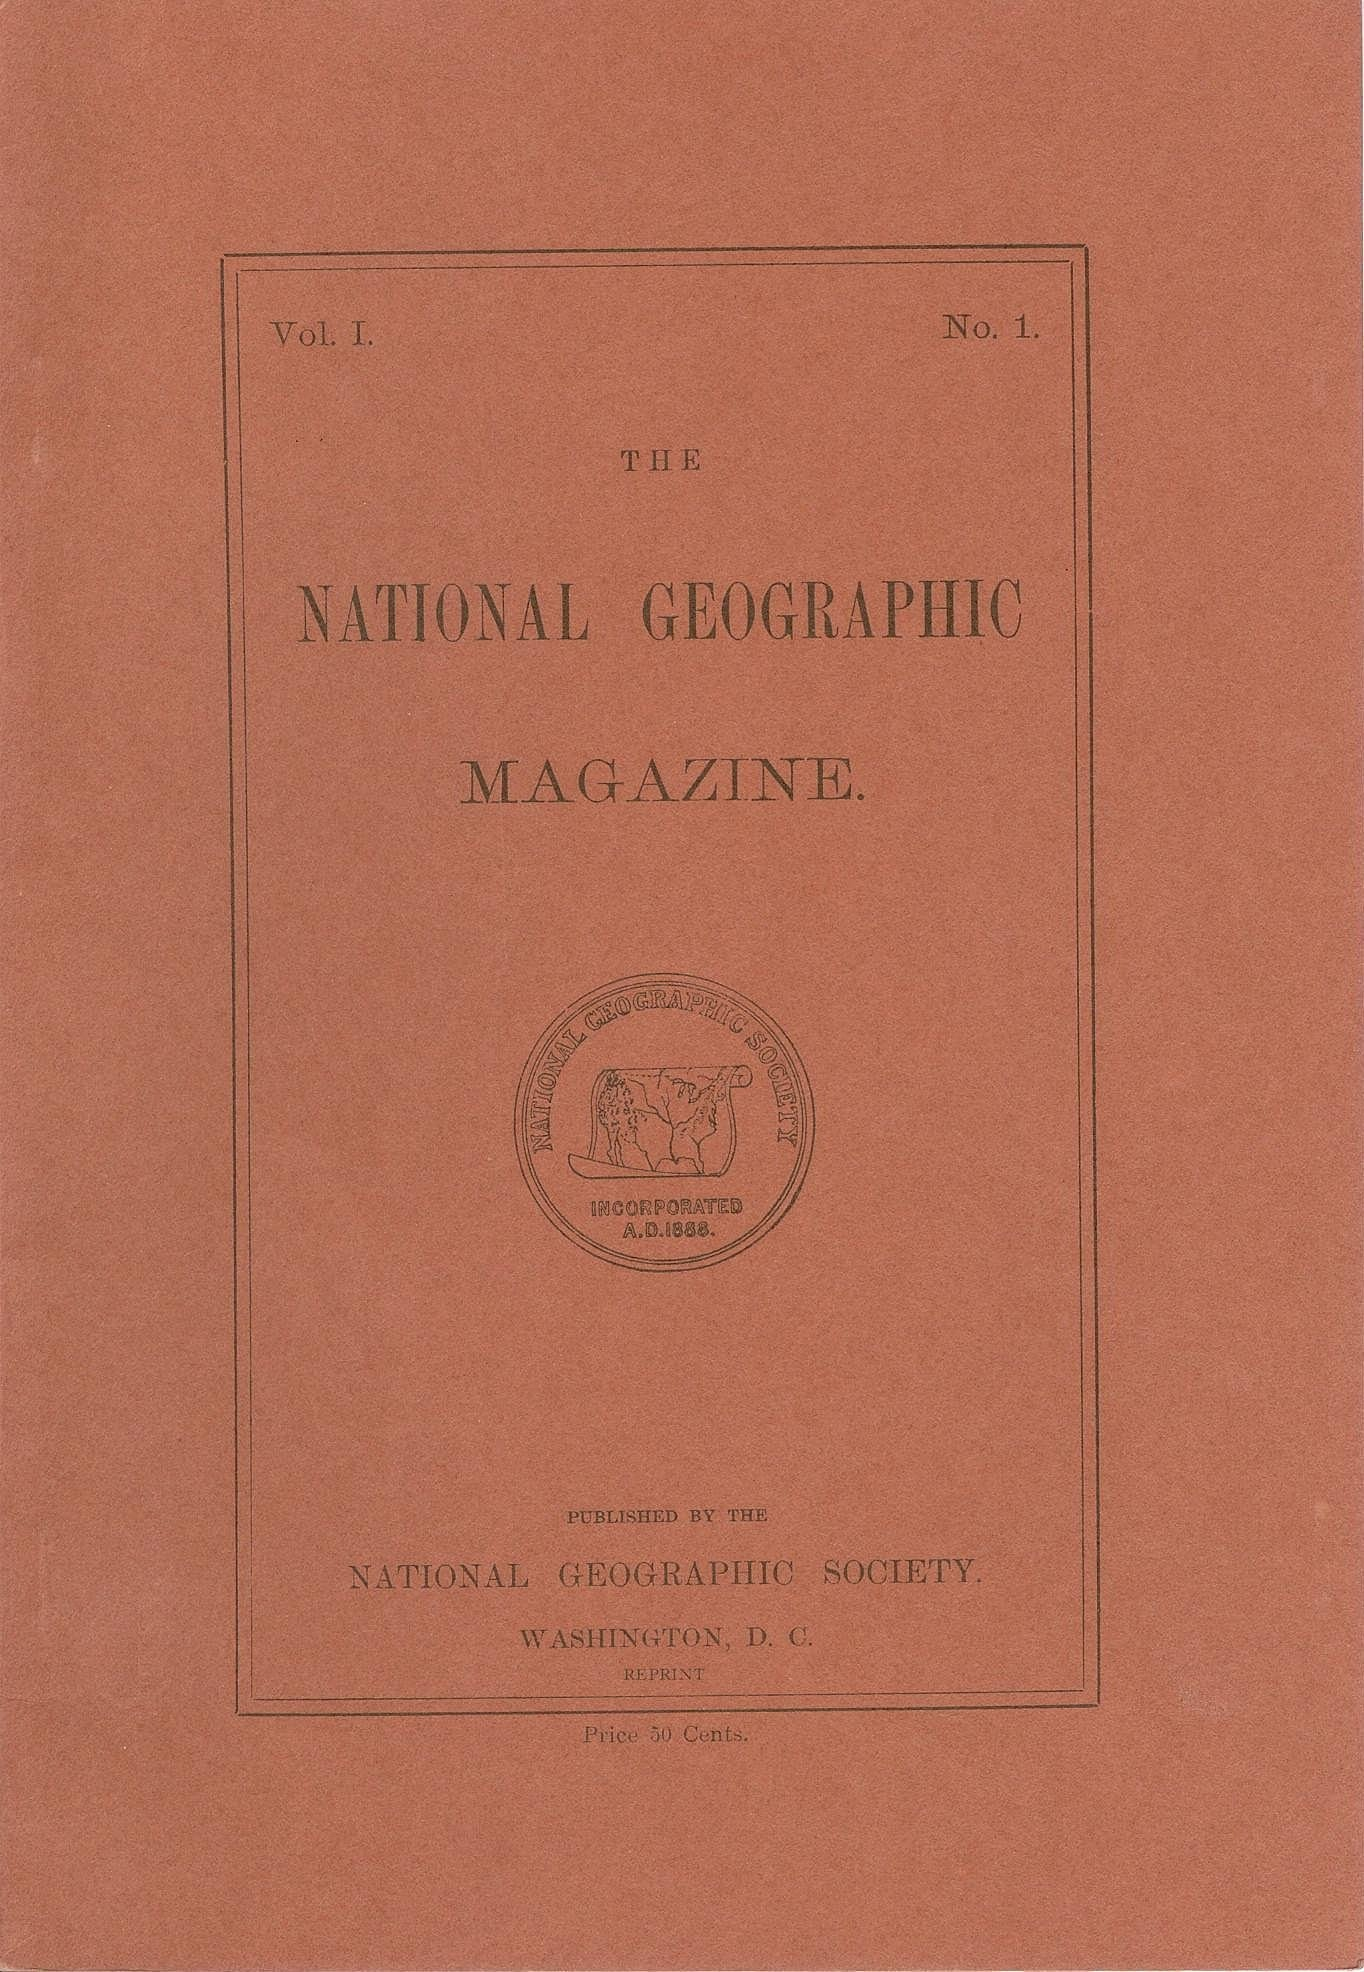 Volume 1 Number 1 - OCT 1888 NATIONAL GEOGRAPHIC MAGAZINE [Reprint], Geographic, National